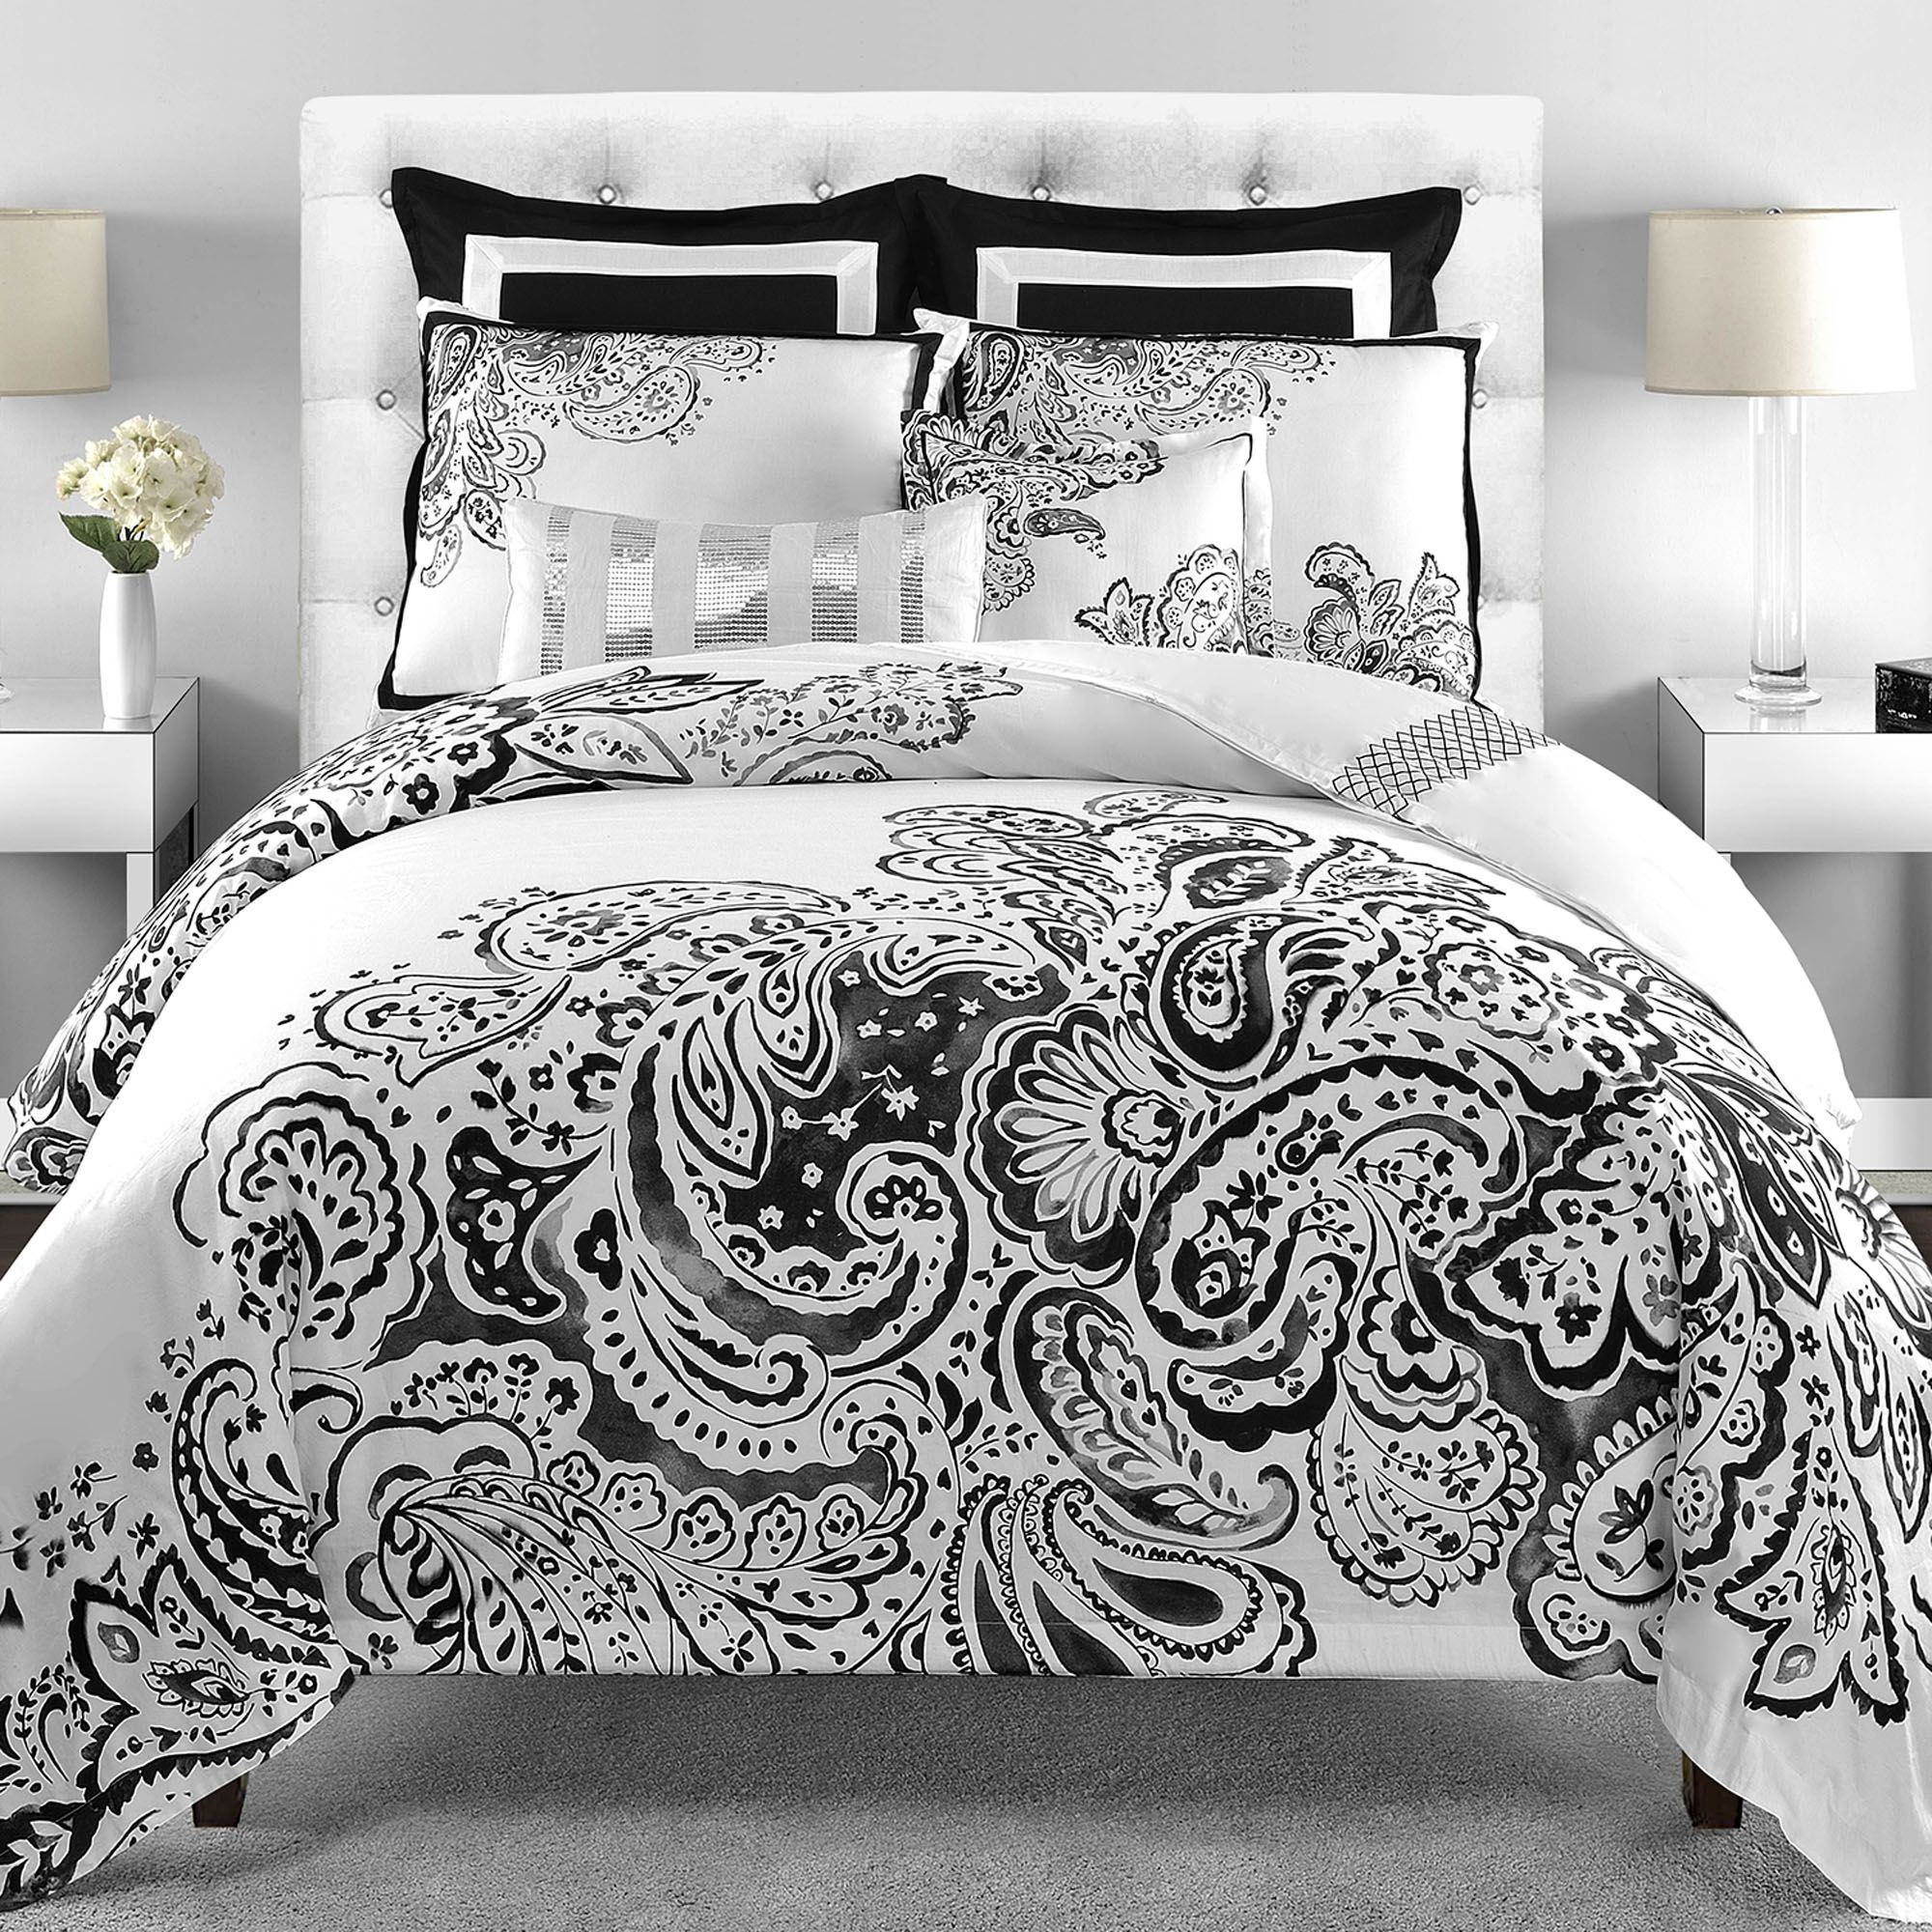 Enchanting Bedroom with black and white comforter sets and laminate porcelain floor also curtain and sidetables